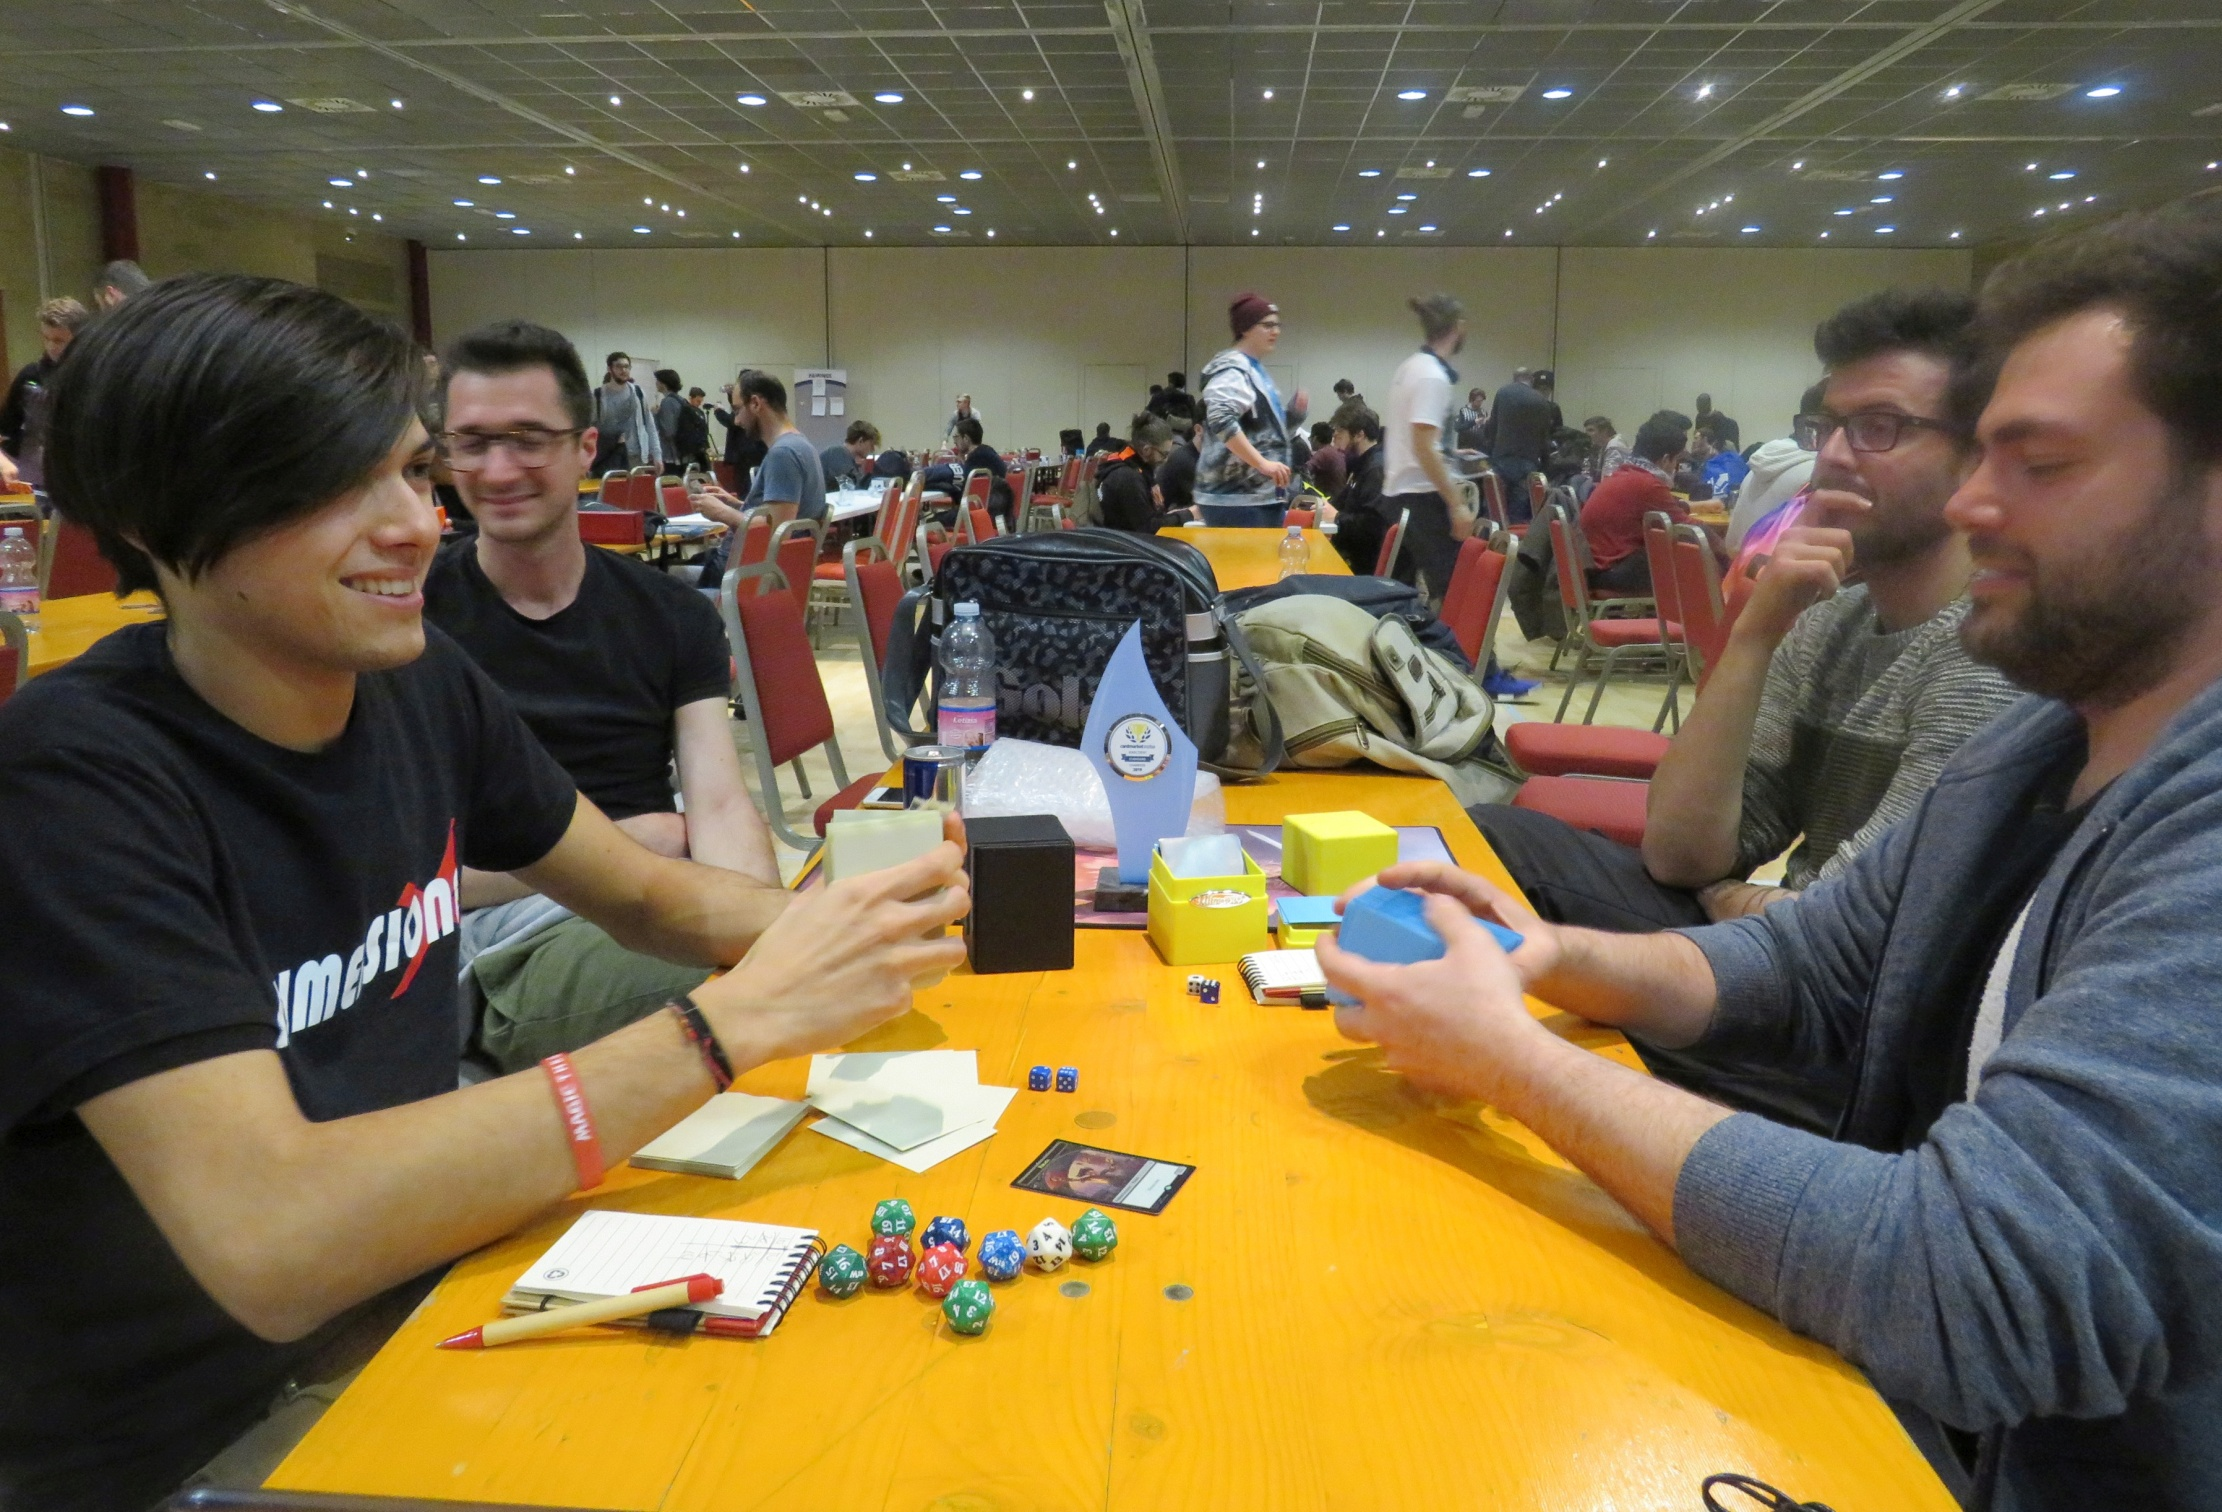 Previously at the Cardmarket Series: Standard in Bologna